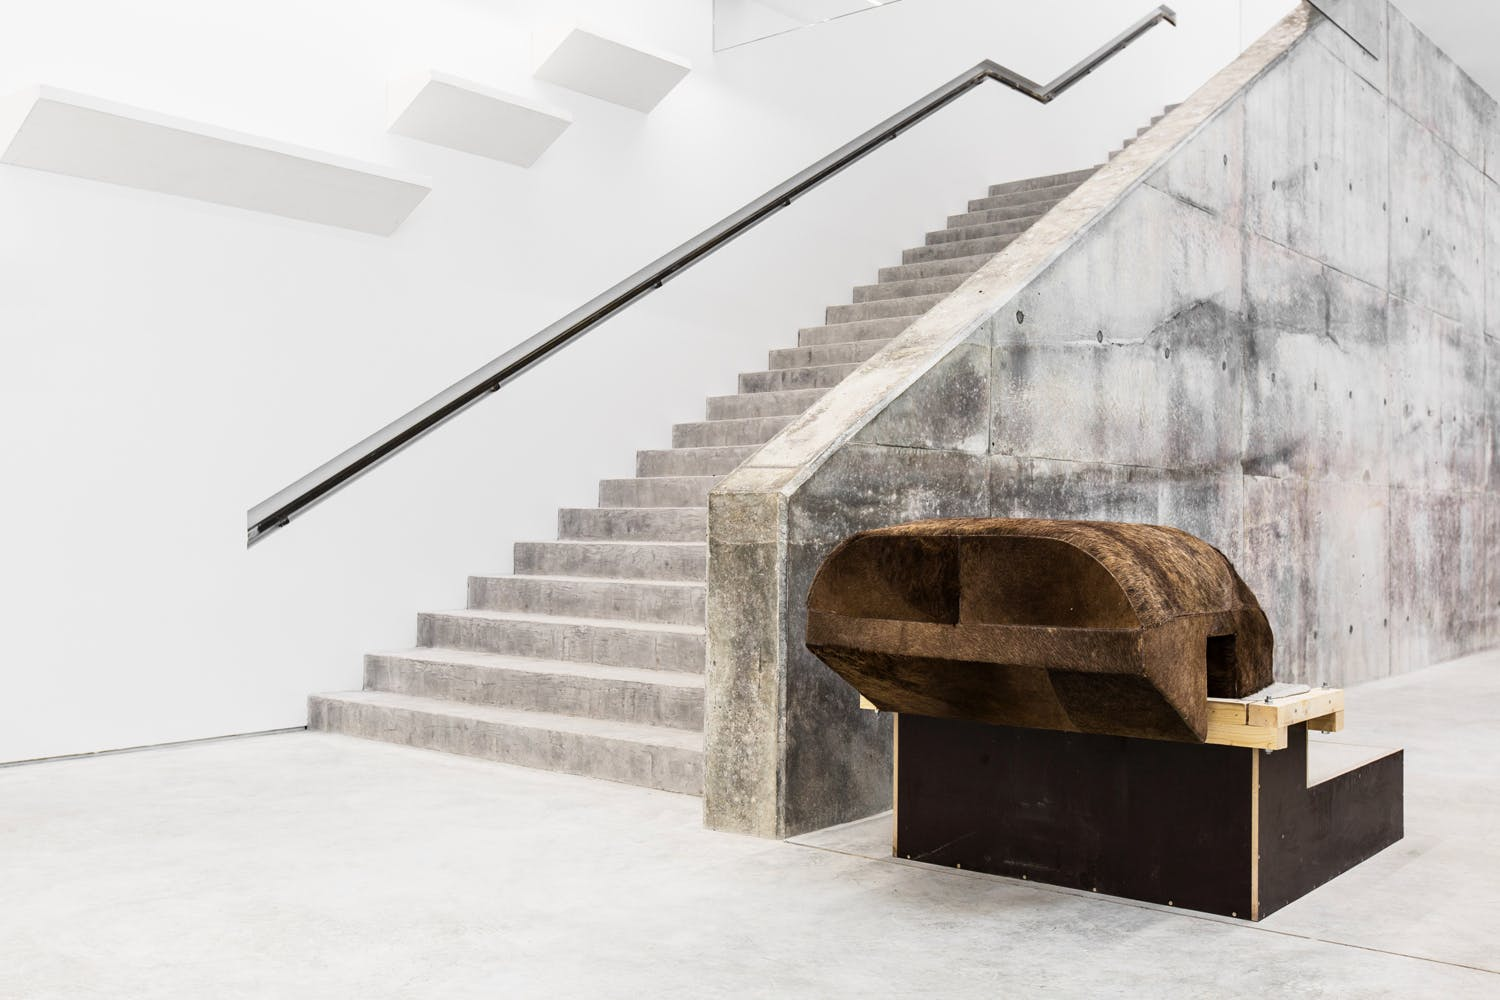 RICK OWENS'S FURNITURE: PRECIOUS, HANDMADE AND EXPENSIVE